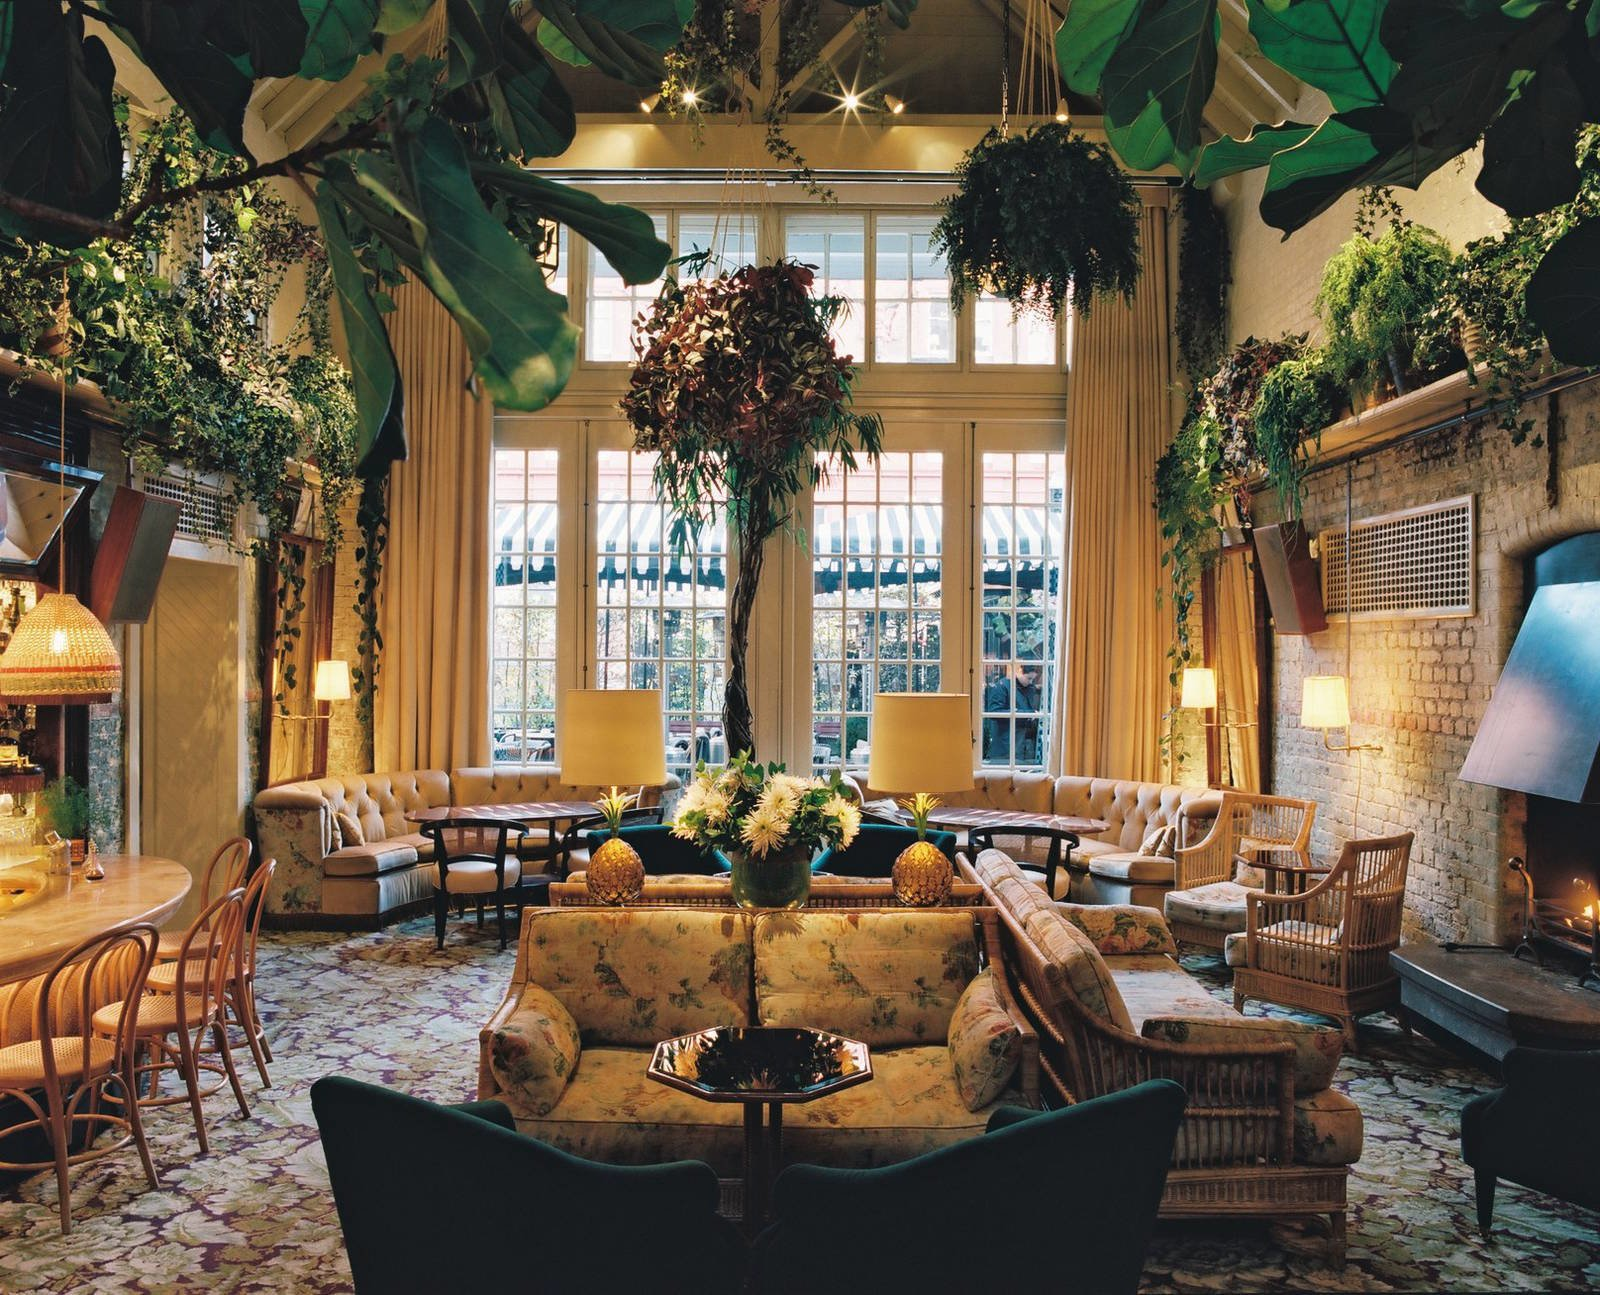 Chiltern Firehouse Modern Home In London England United